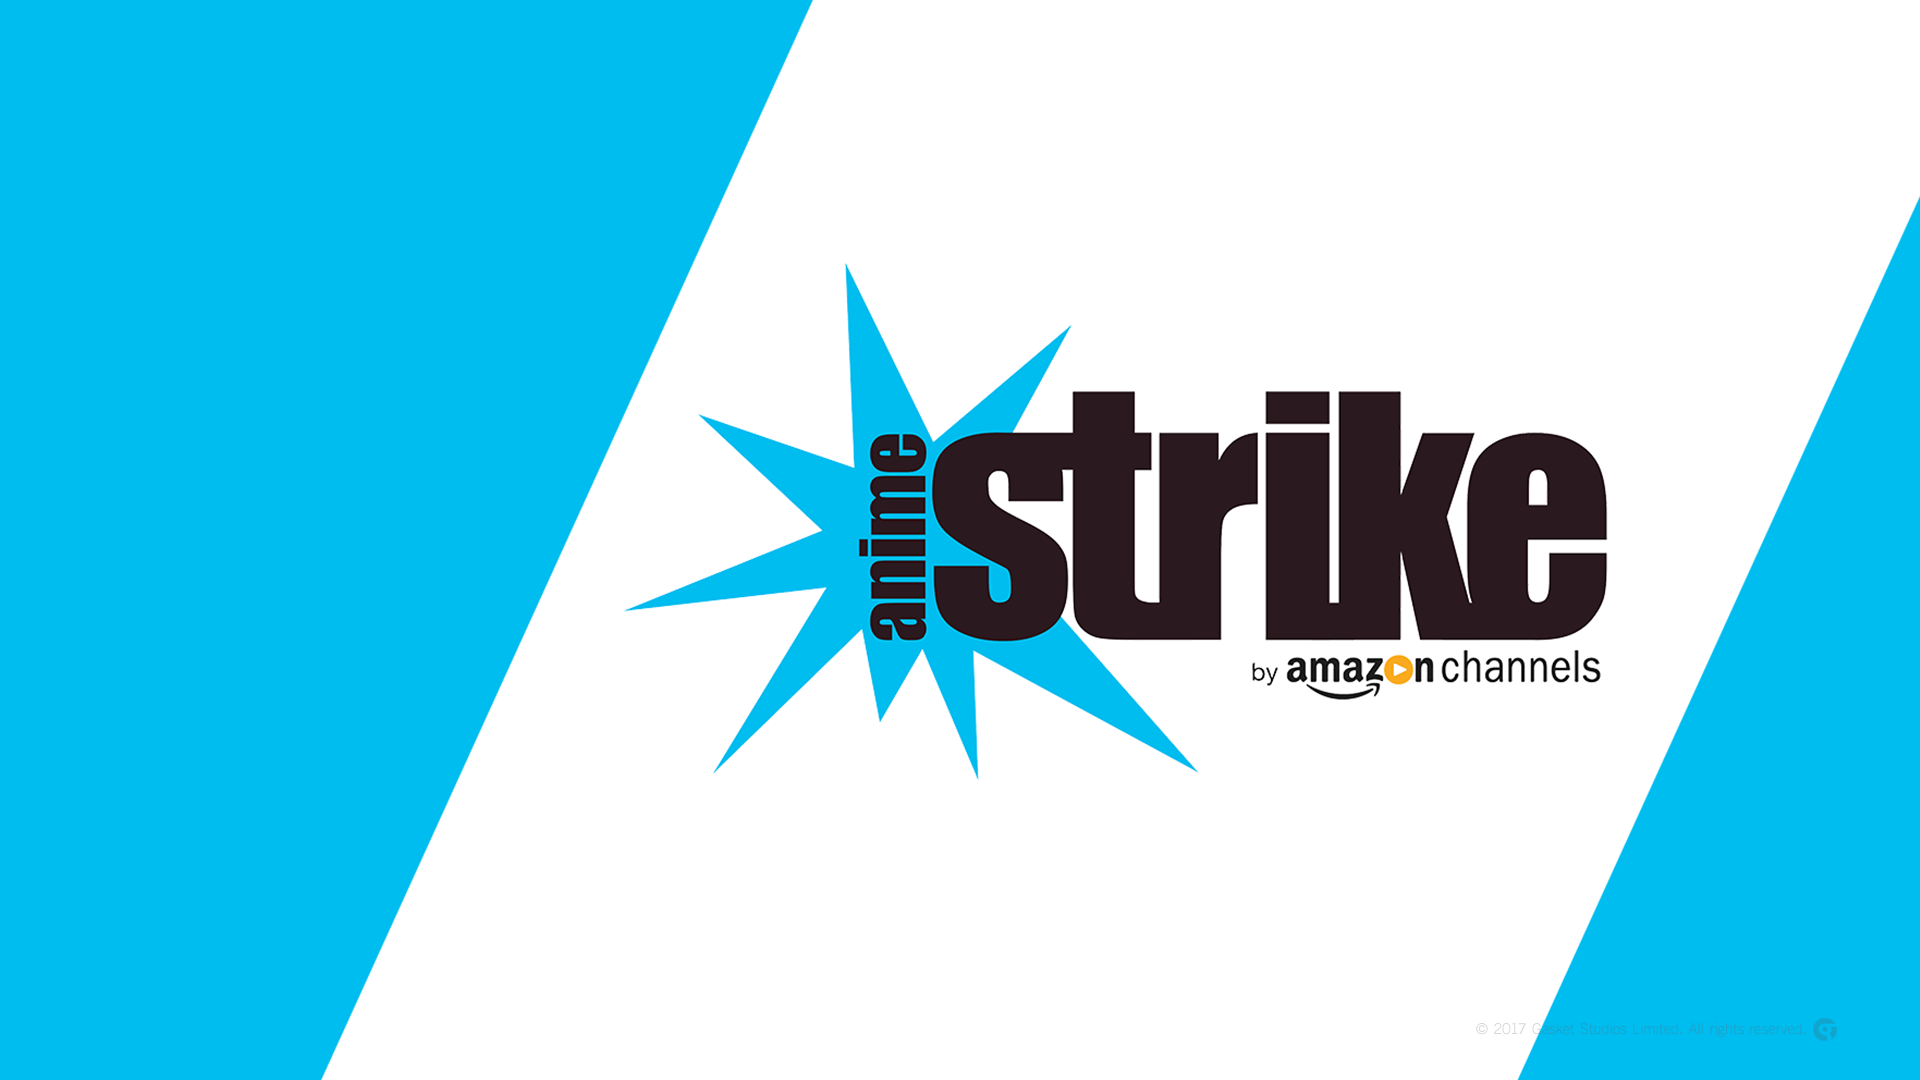 https://i0.wp.com/thegeekiary.com/wp-content/uploads/2018/01/anime-strike-logo.png